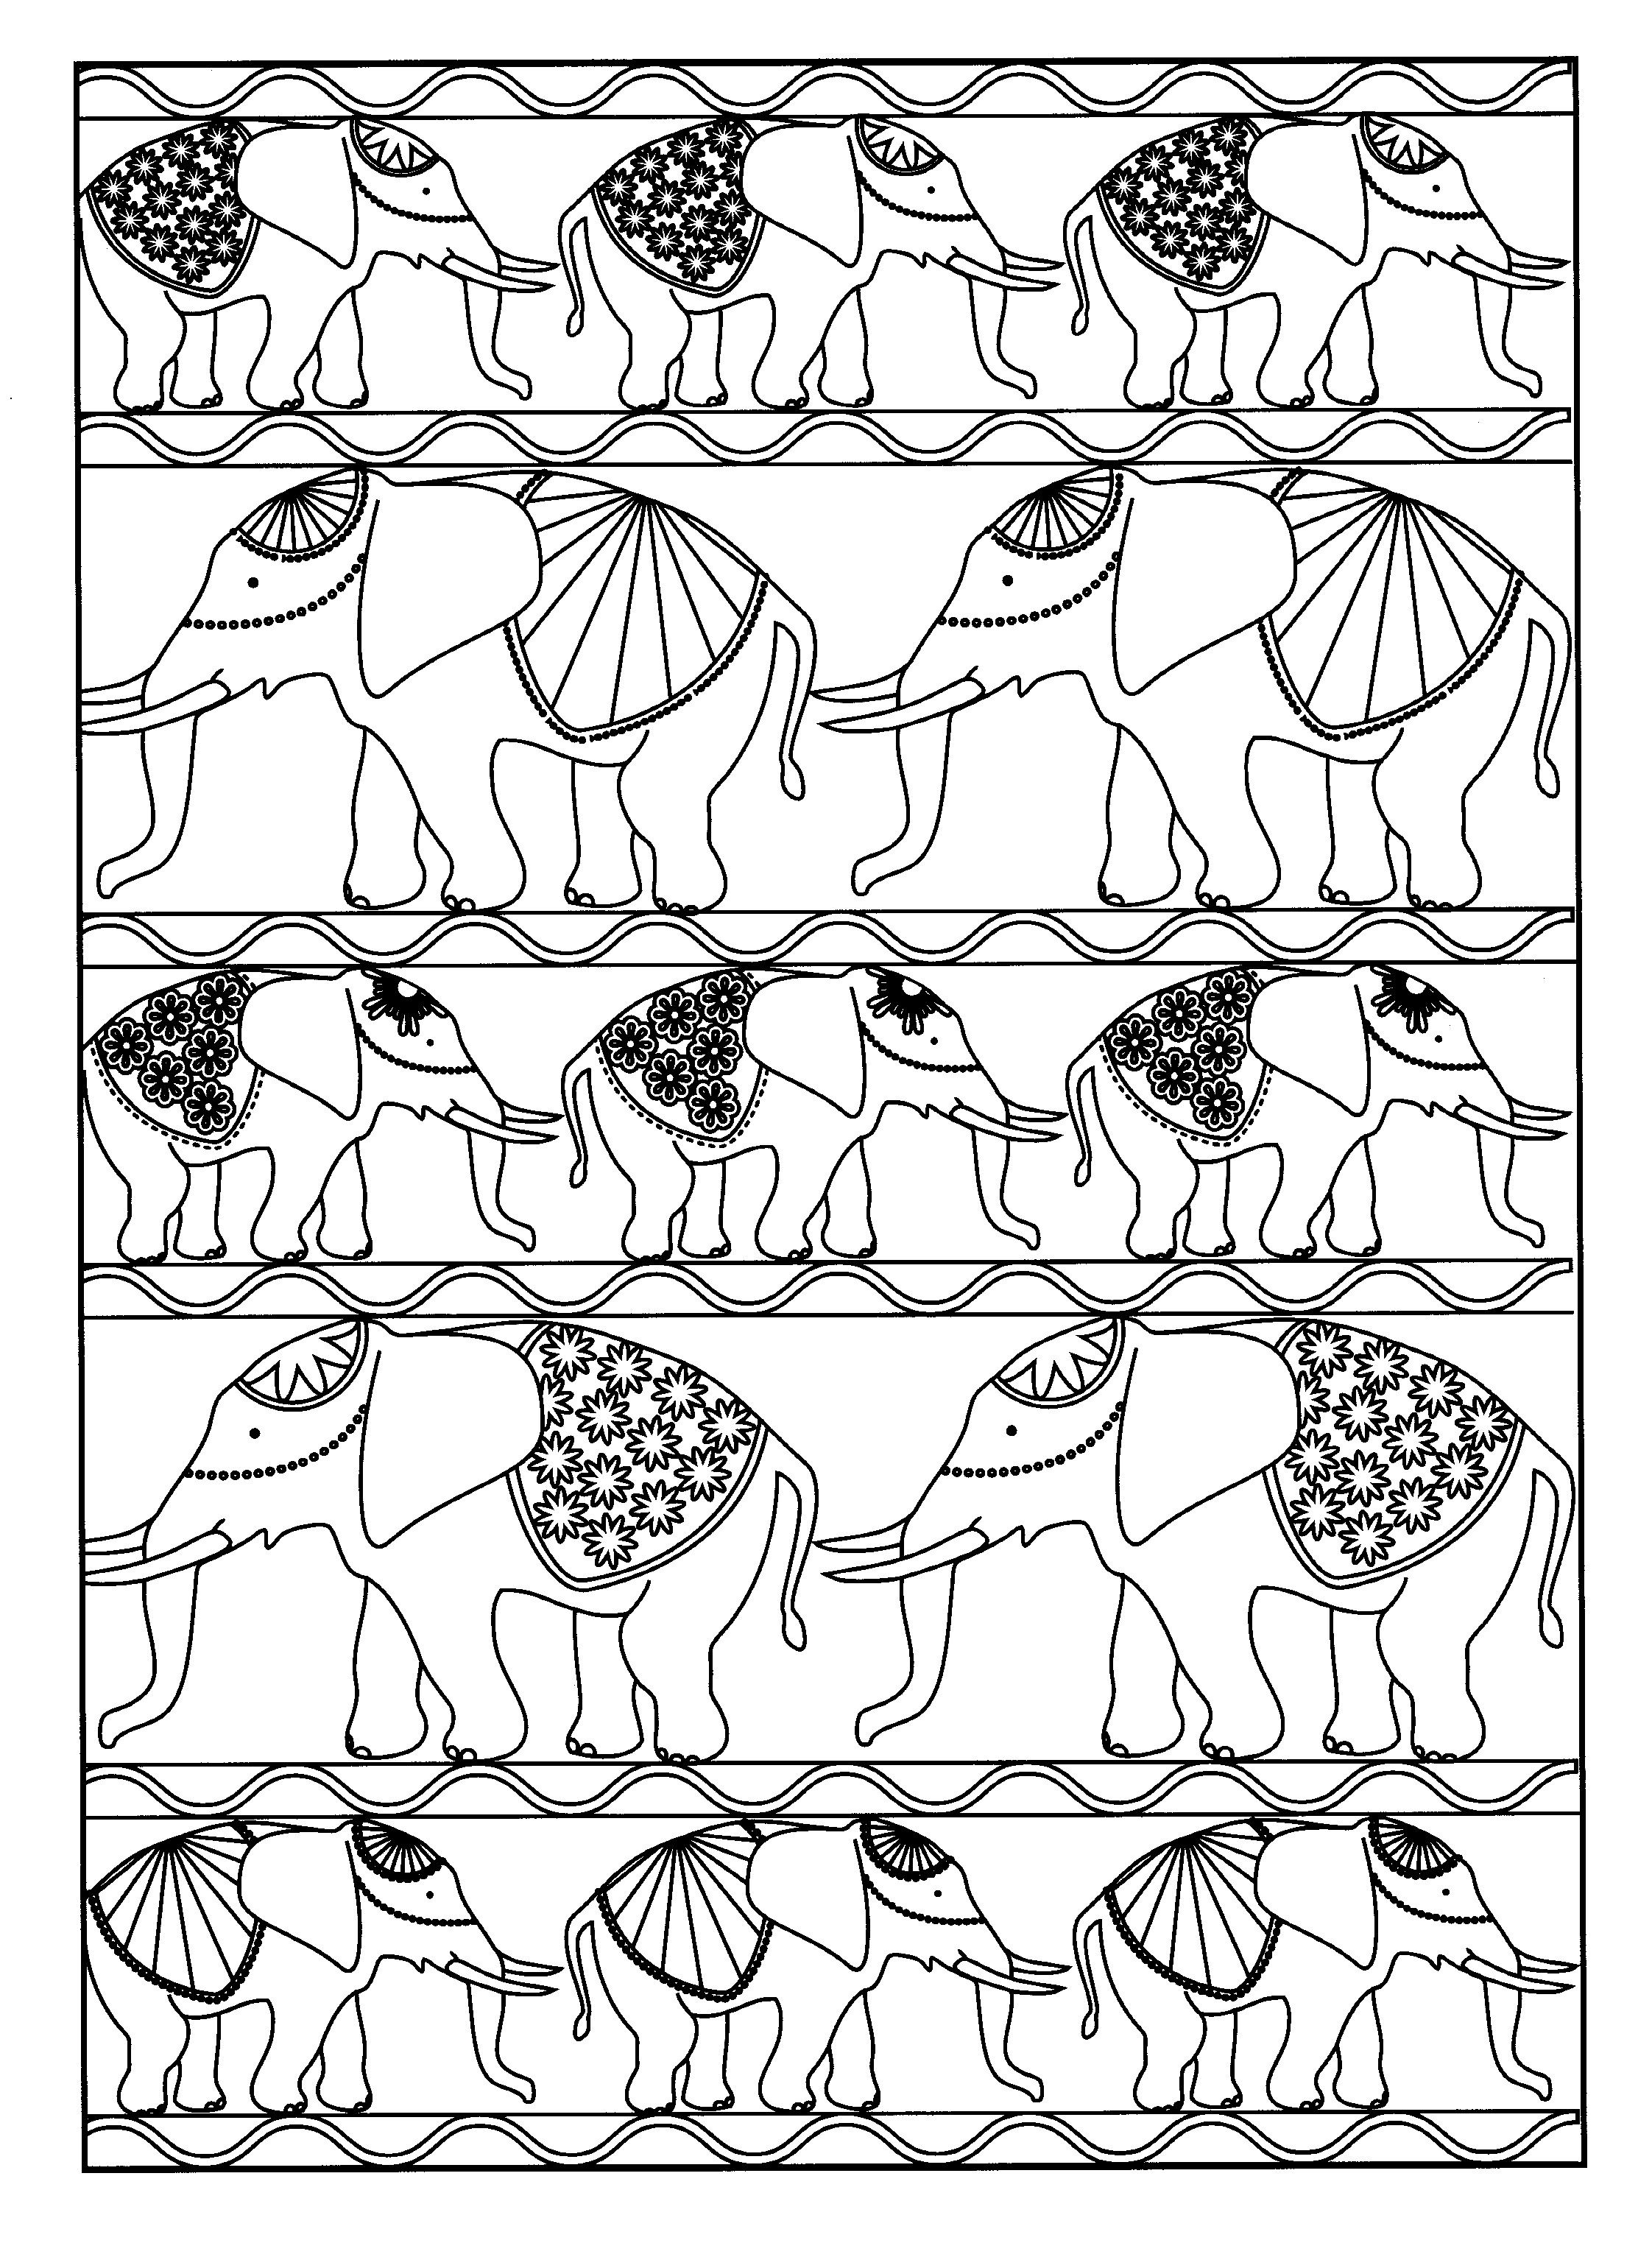 Free coloring page «coloring-adult-elephants».